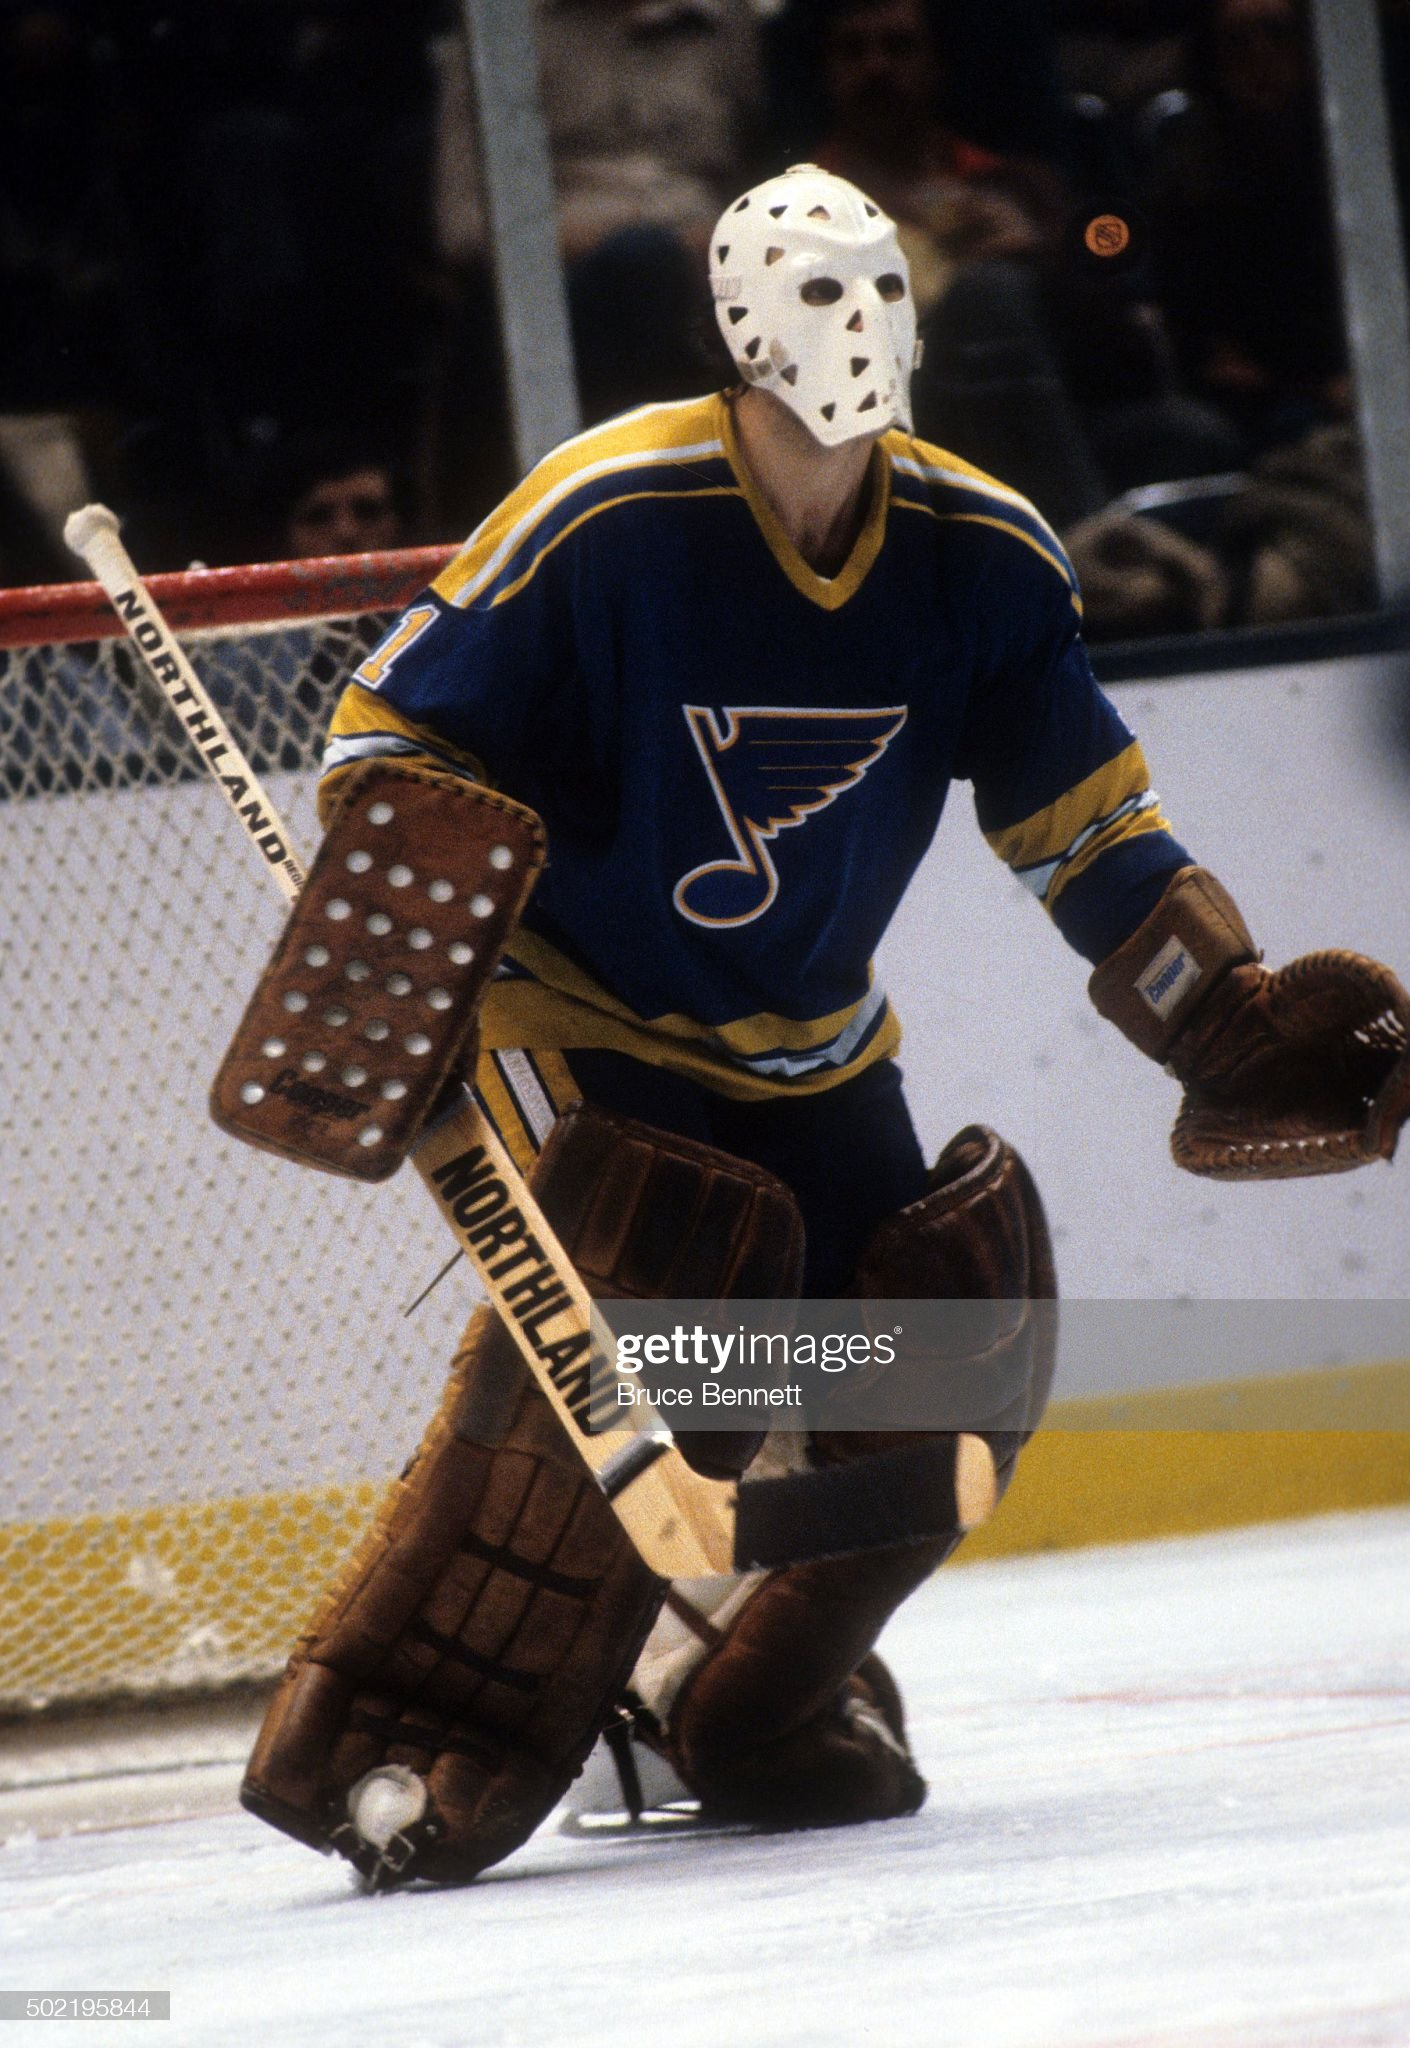 goalie-mike-liut-of-the-st-louis-blues-l